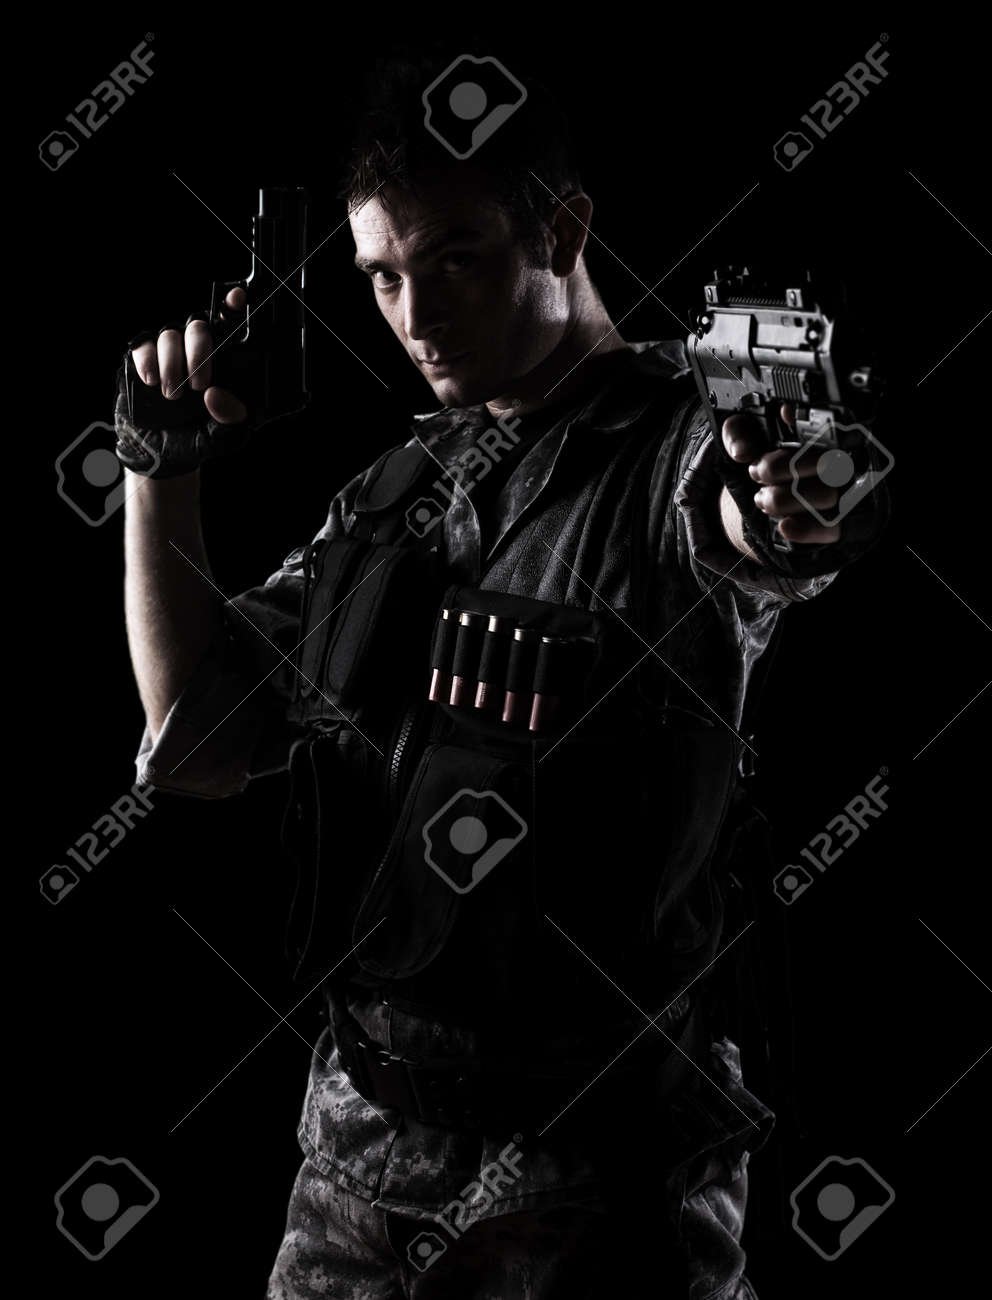 young soldier shooting with a pistol on a black background Stock Photo - 10550399